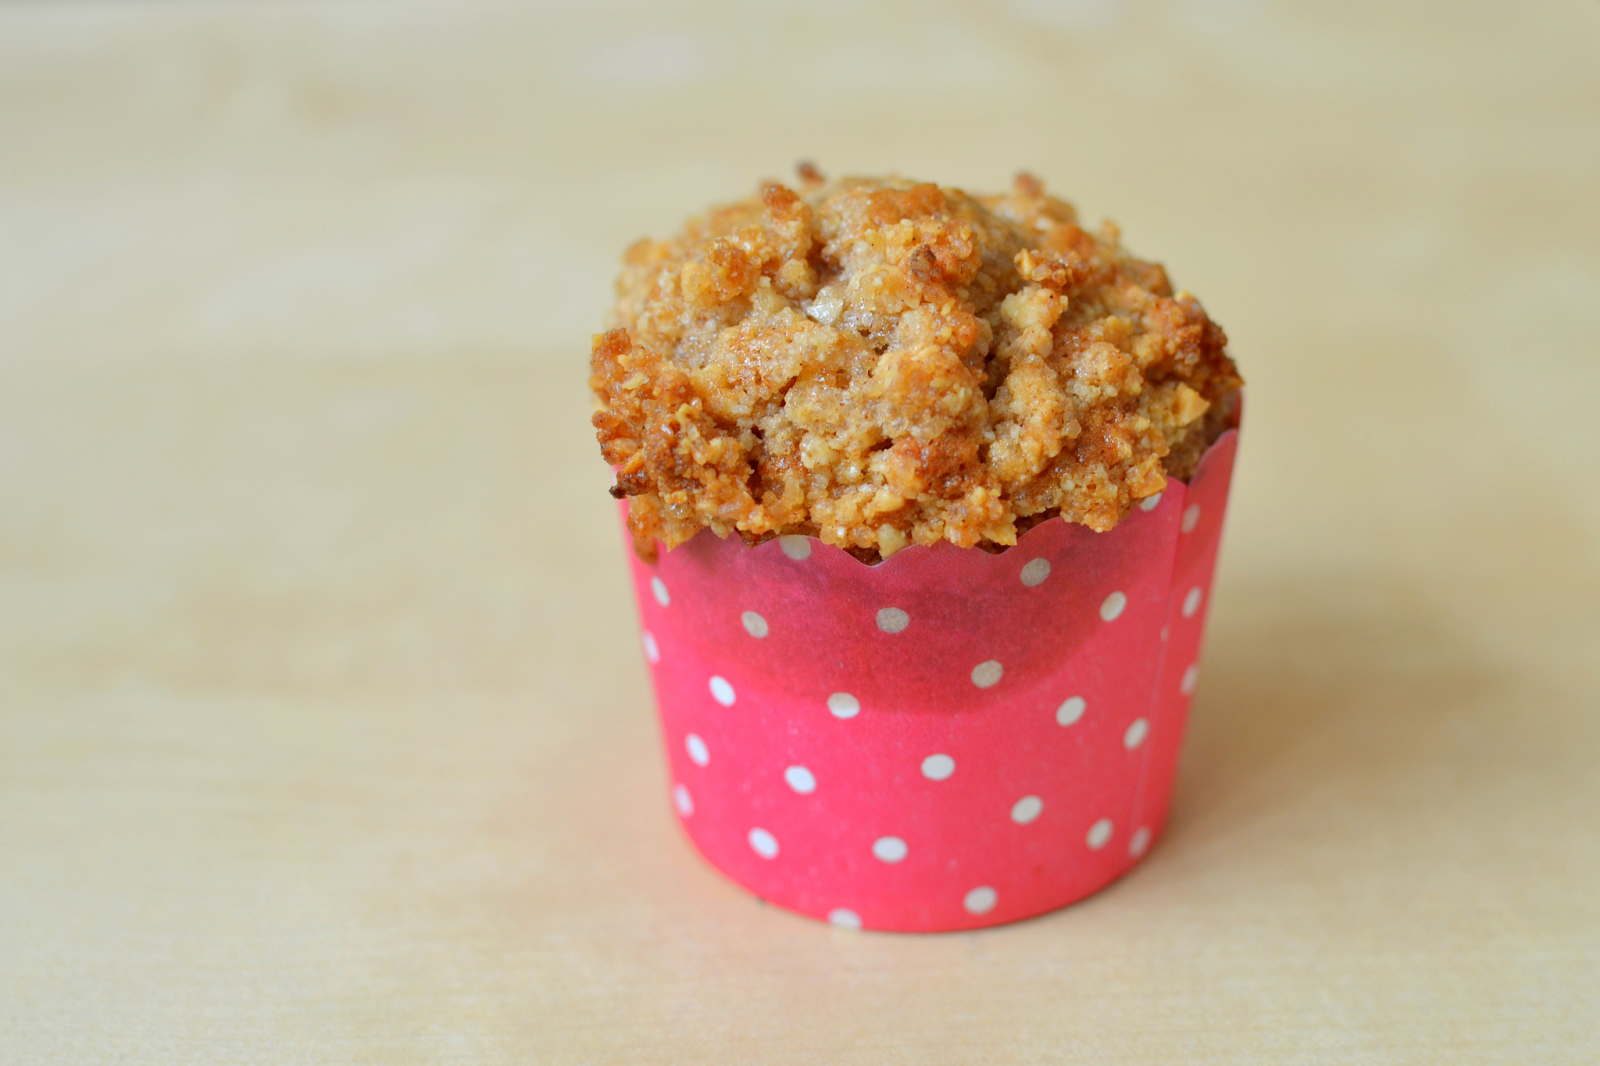 Pear and Cinnamon Muffins with Almond Crumble